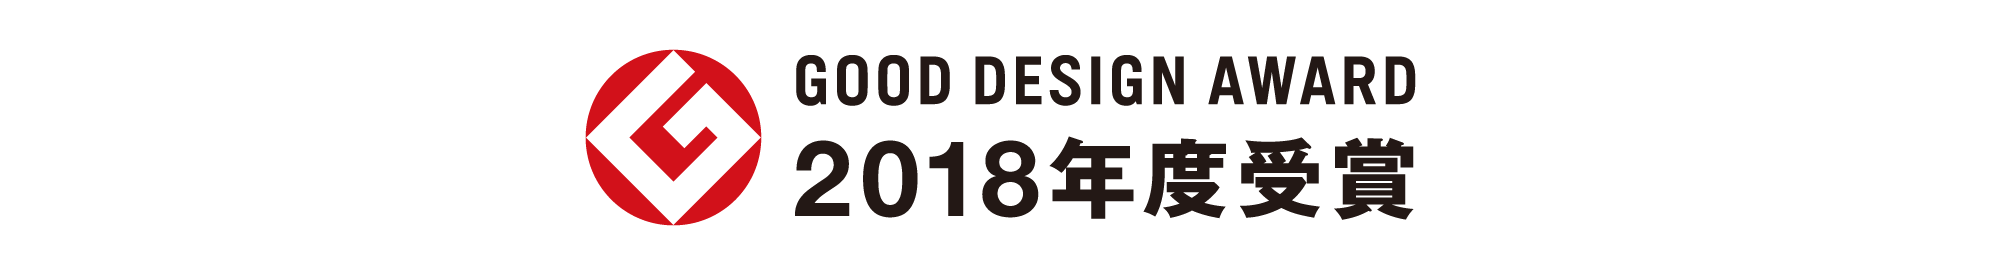 GOOD DESIGN AWARD 2018年度受賞